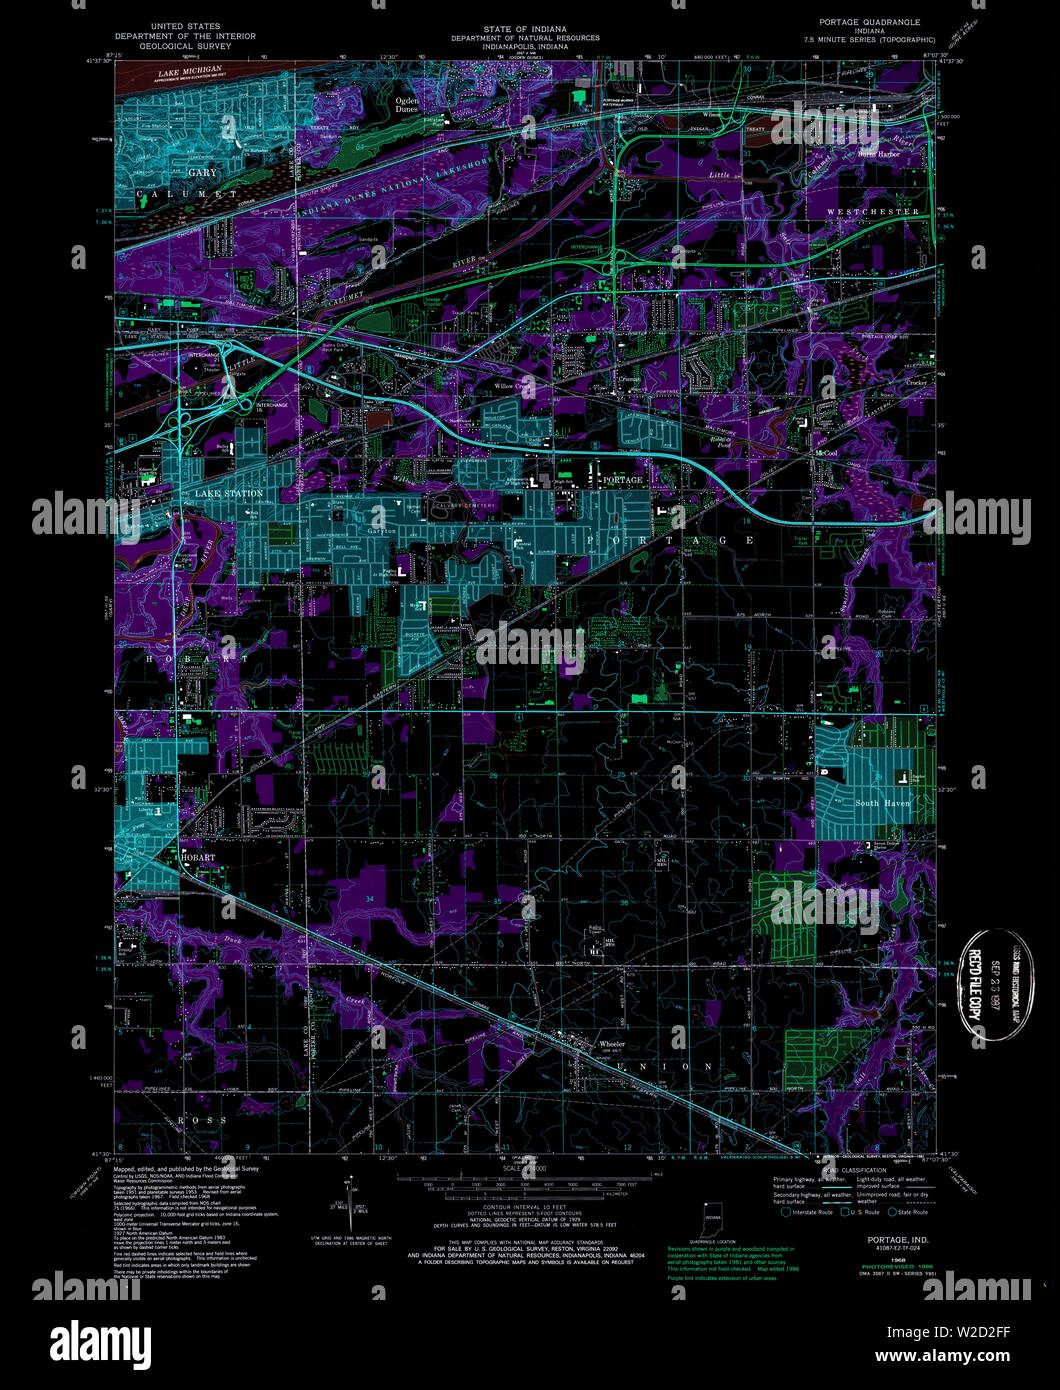 USGS TOPO Map Indiana IN Portage 159370 1968 24000 Inverted Restoration Stock Photo